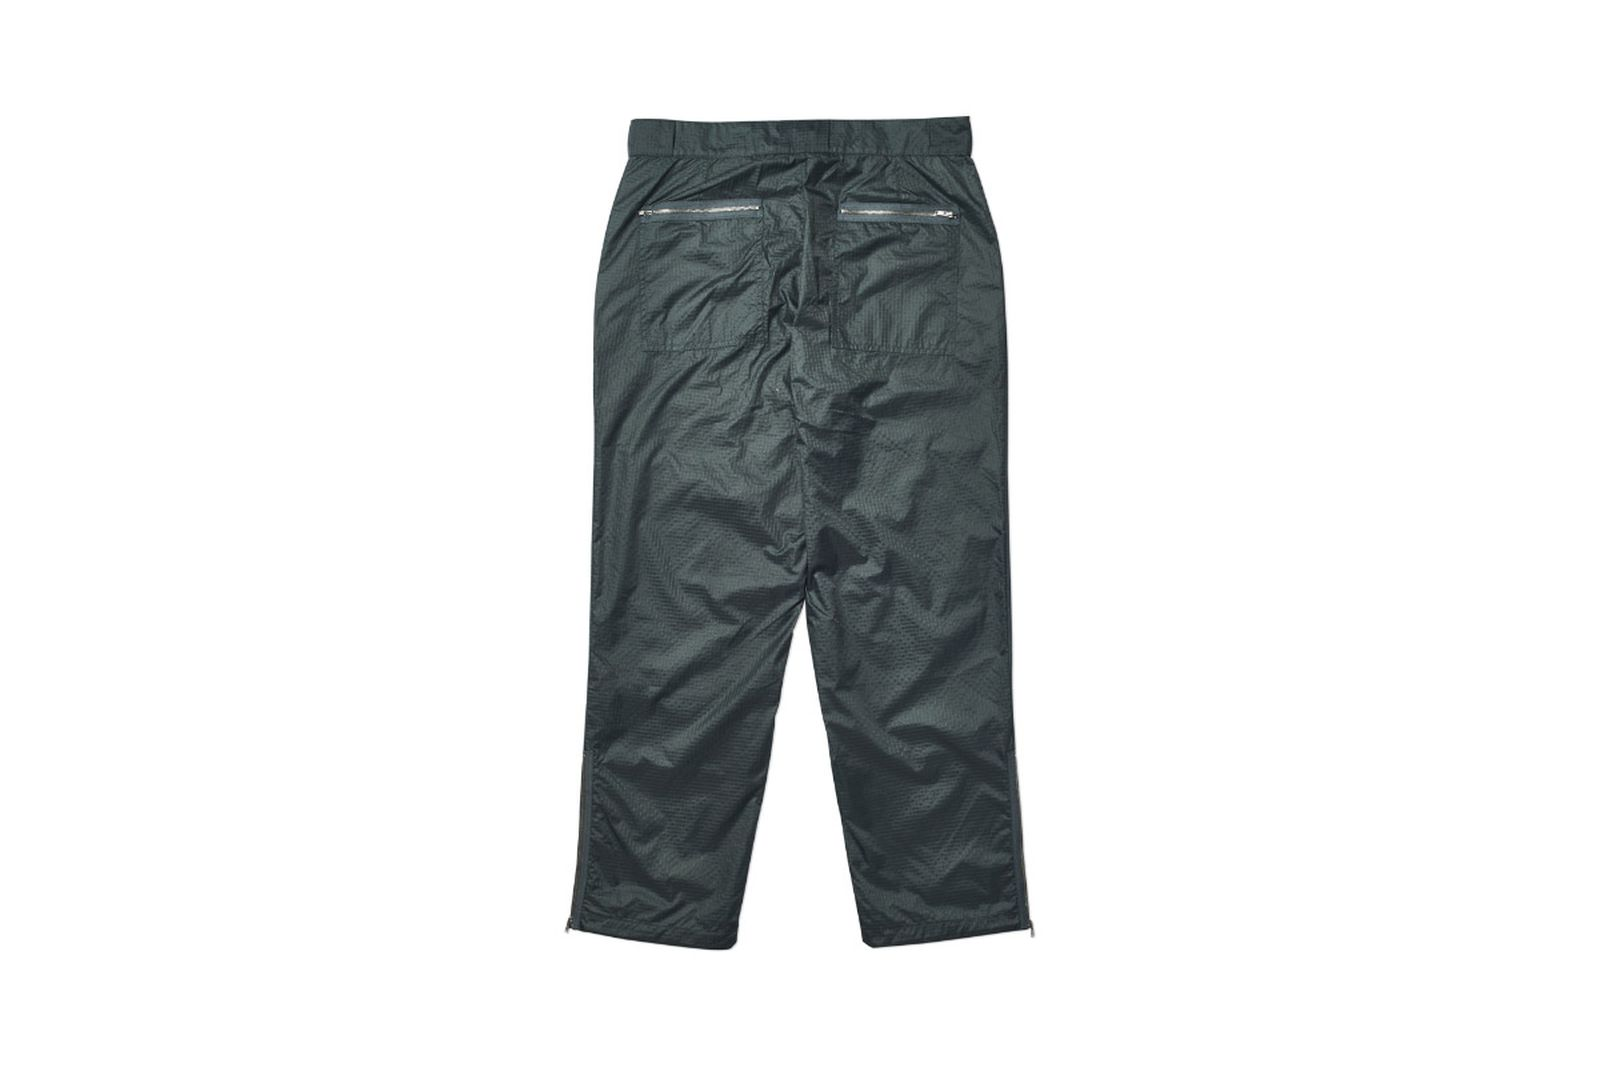 Palace 2019 Autumn Pant Flight grey4455 fw19